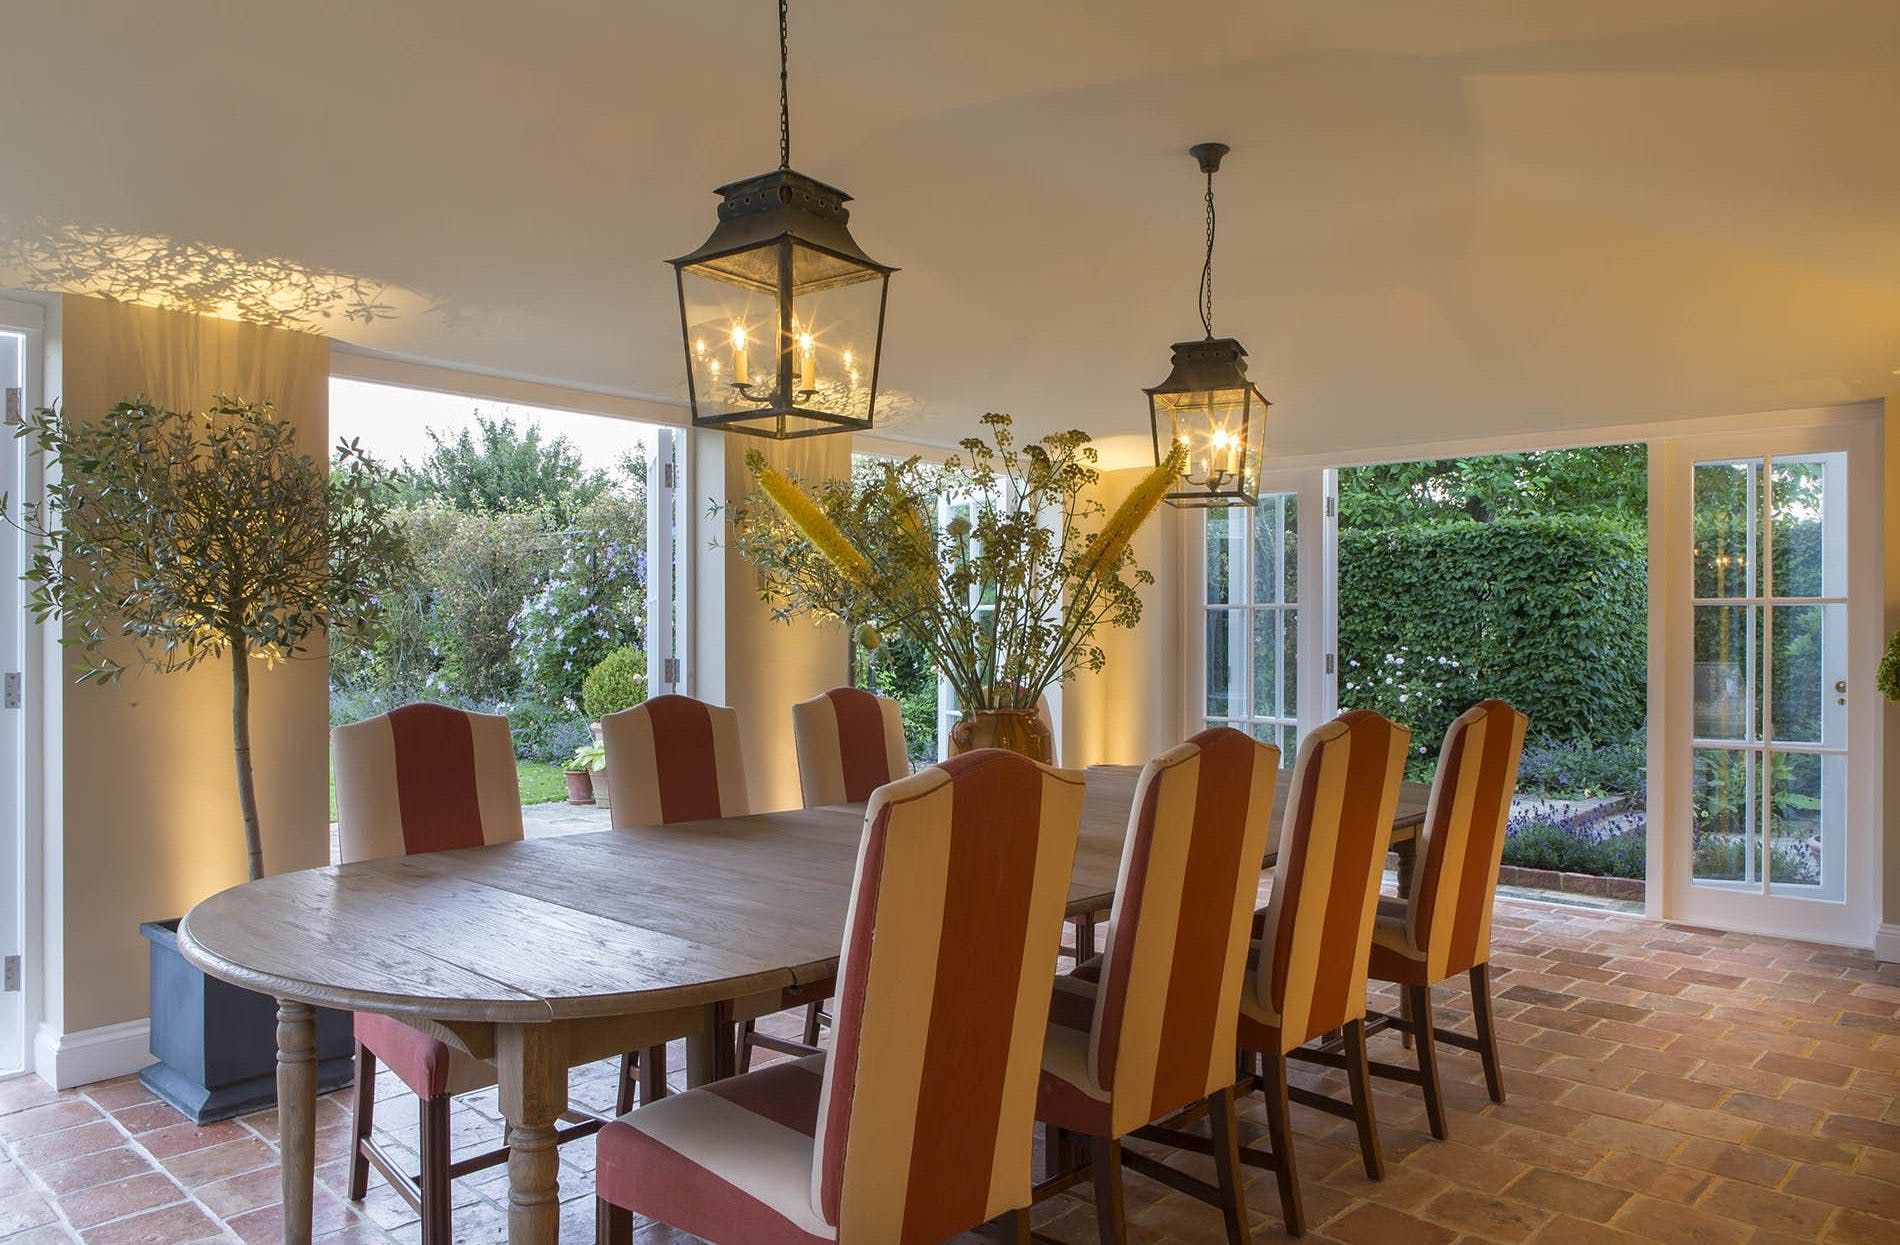 lighting for dining room in conservatory